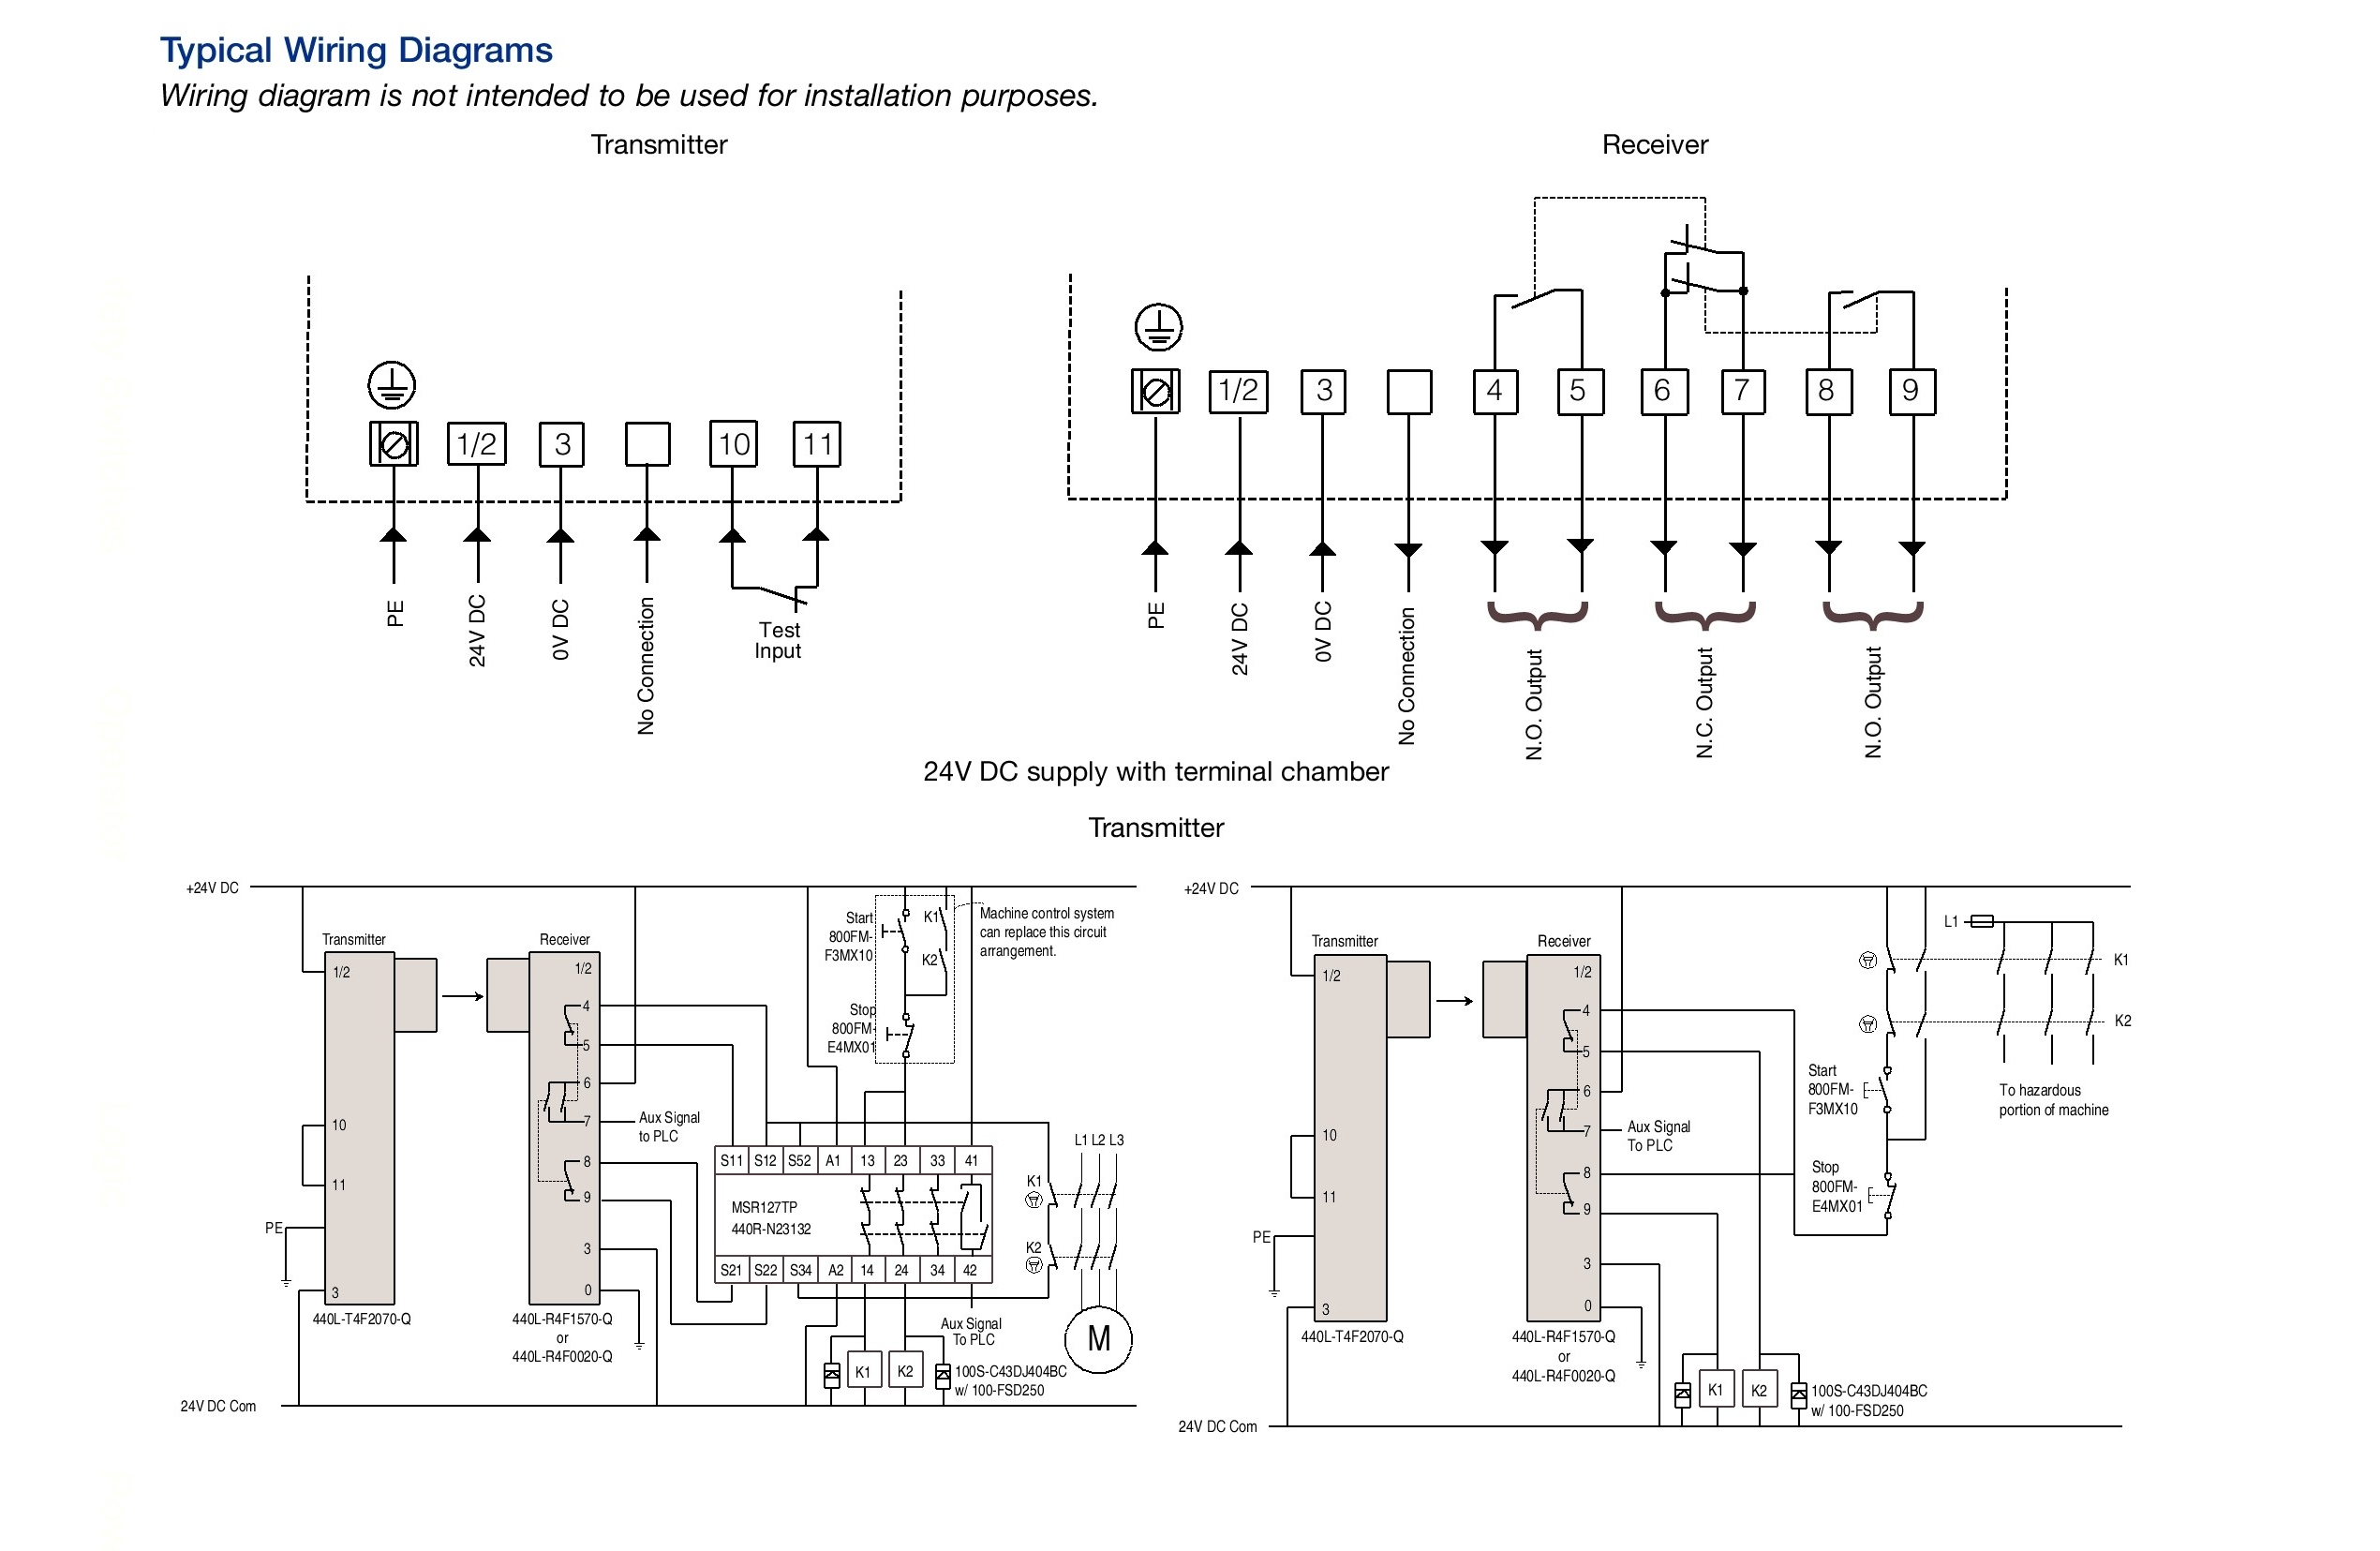 1949 Chevy Wiring Diagram also Fiat Linea 2006 together with New Toyota Hiace 2015 further Honda Cd125s Electrical Wiring Diagram further Wiring Diagram For Bug Zapper. on chevrolet schematics